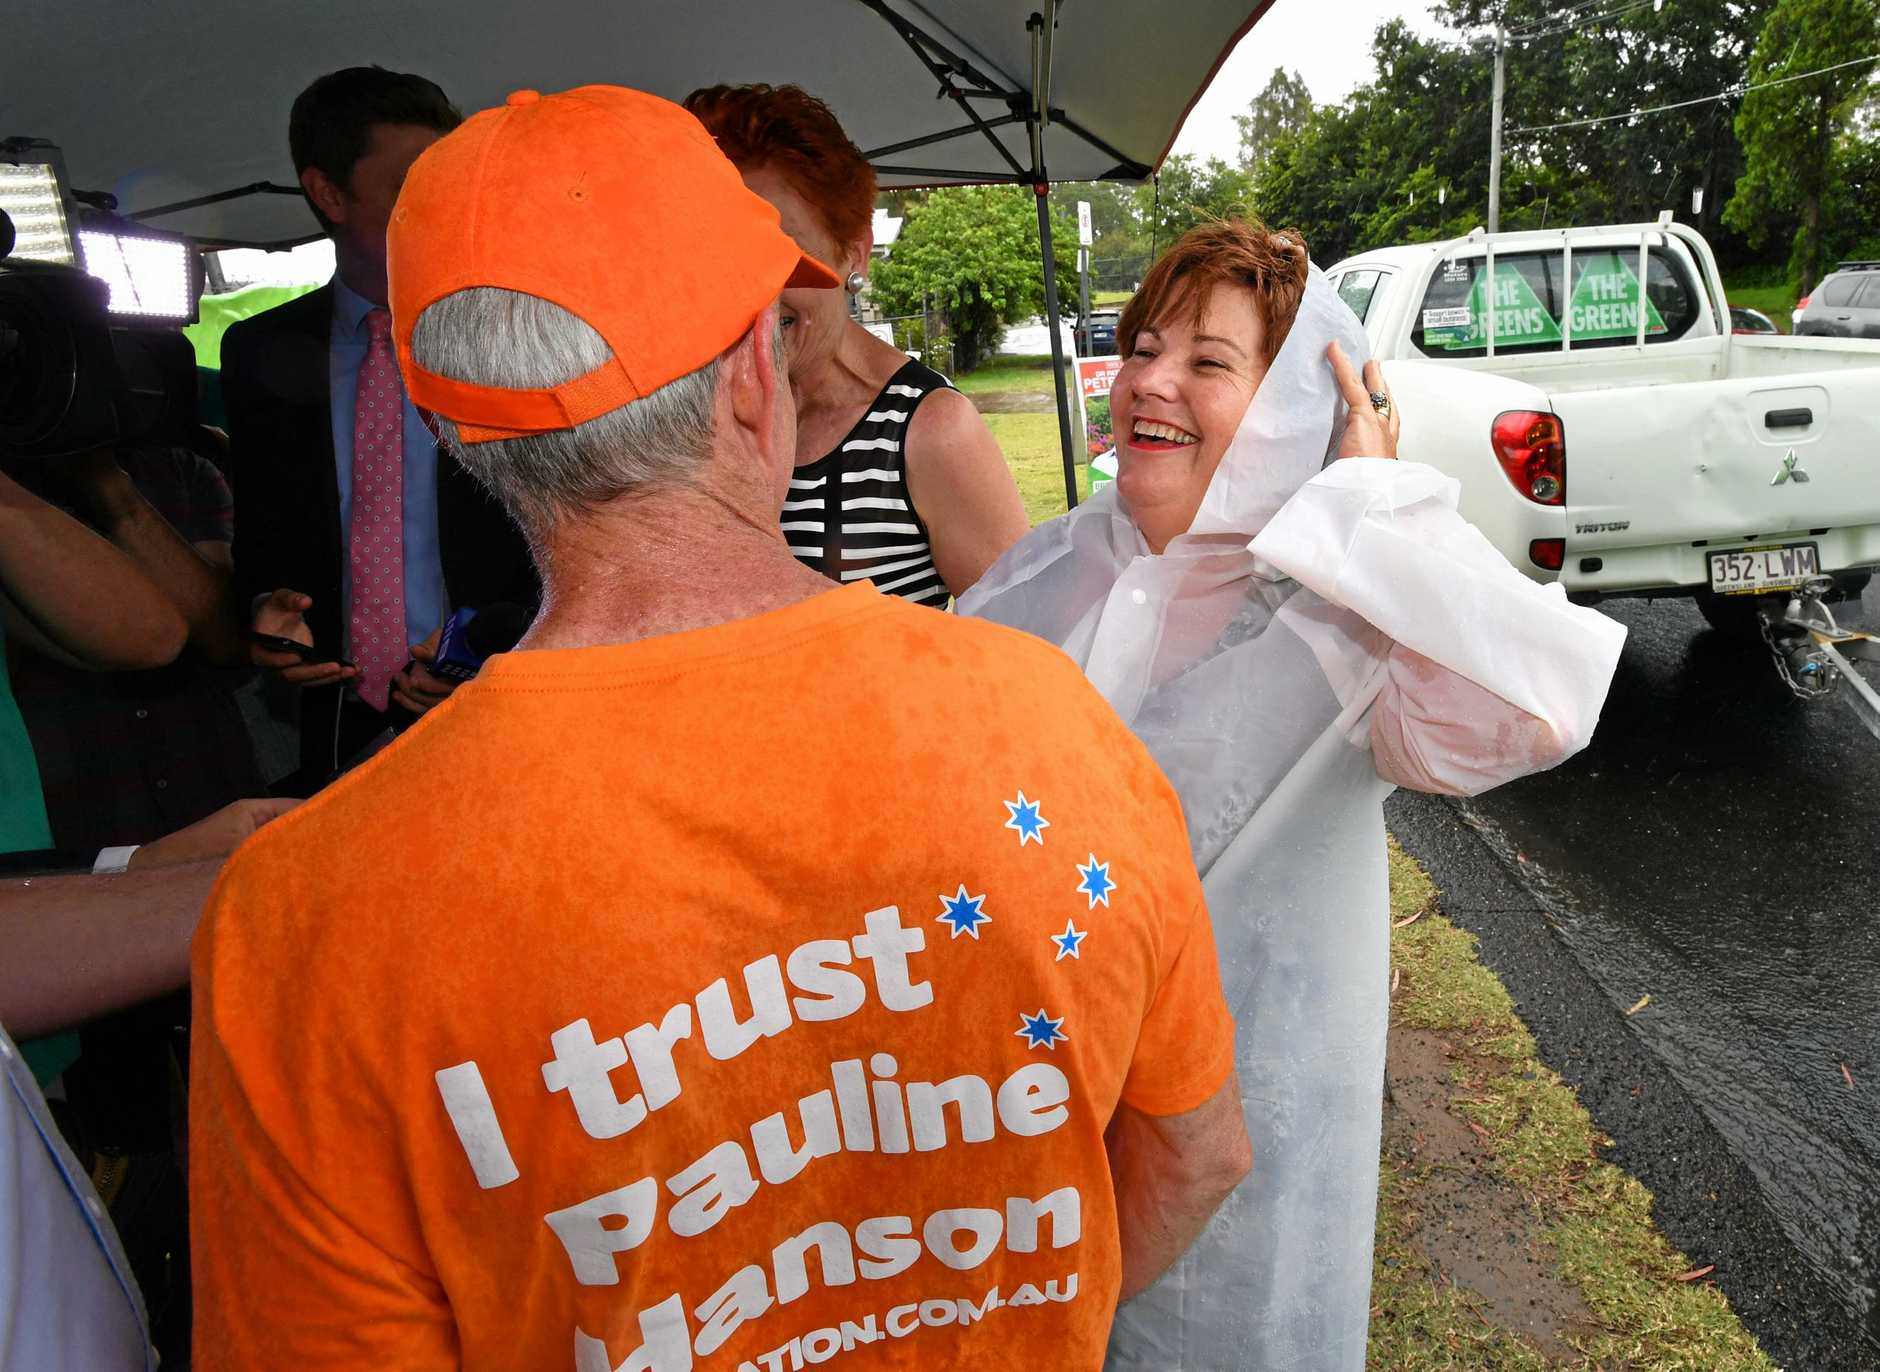 ALP member for Bundamba, Jo-Ann Miller (right) is seen talking to former One Nation Senator Malcolm Roberts (left) in the suburb of Bundamba in Ipswich during the Queensland Election campaign on Tuesday, November 21, 2017. Senator Hanson is campaigning in the electorate of Bundamba currently held by the ALP's Jo-Ann Miller. (AAP Image / Darren England) NO ARCHIVING